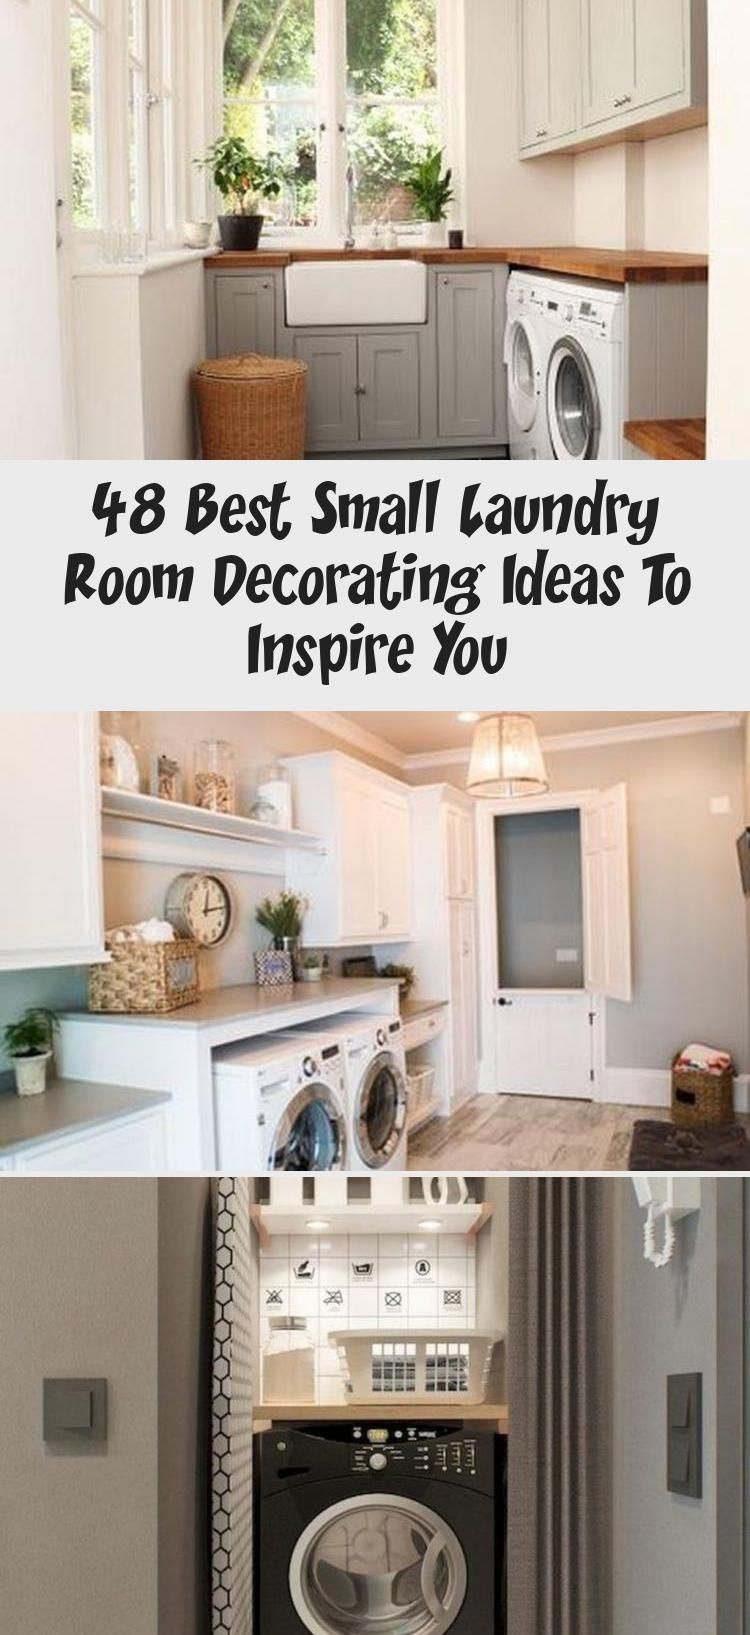 48 Best Small Laundry Room Decorating Ideas To Inspire You